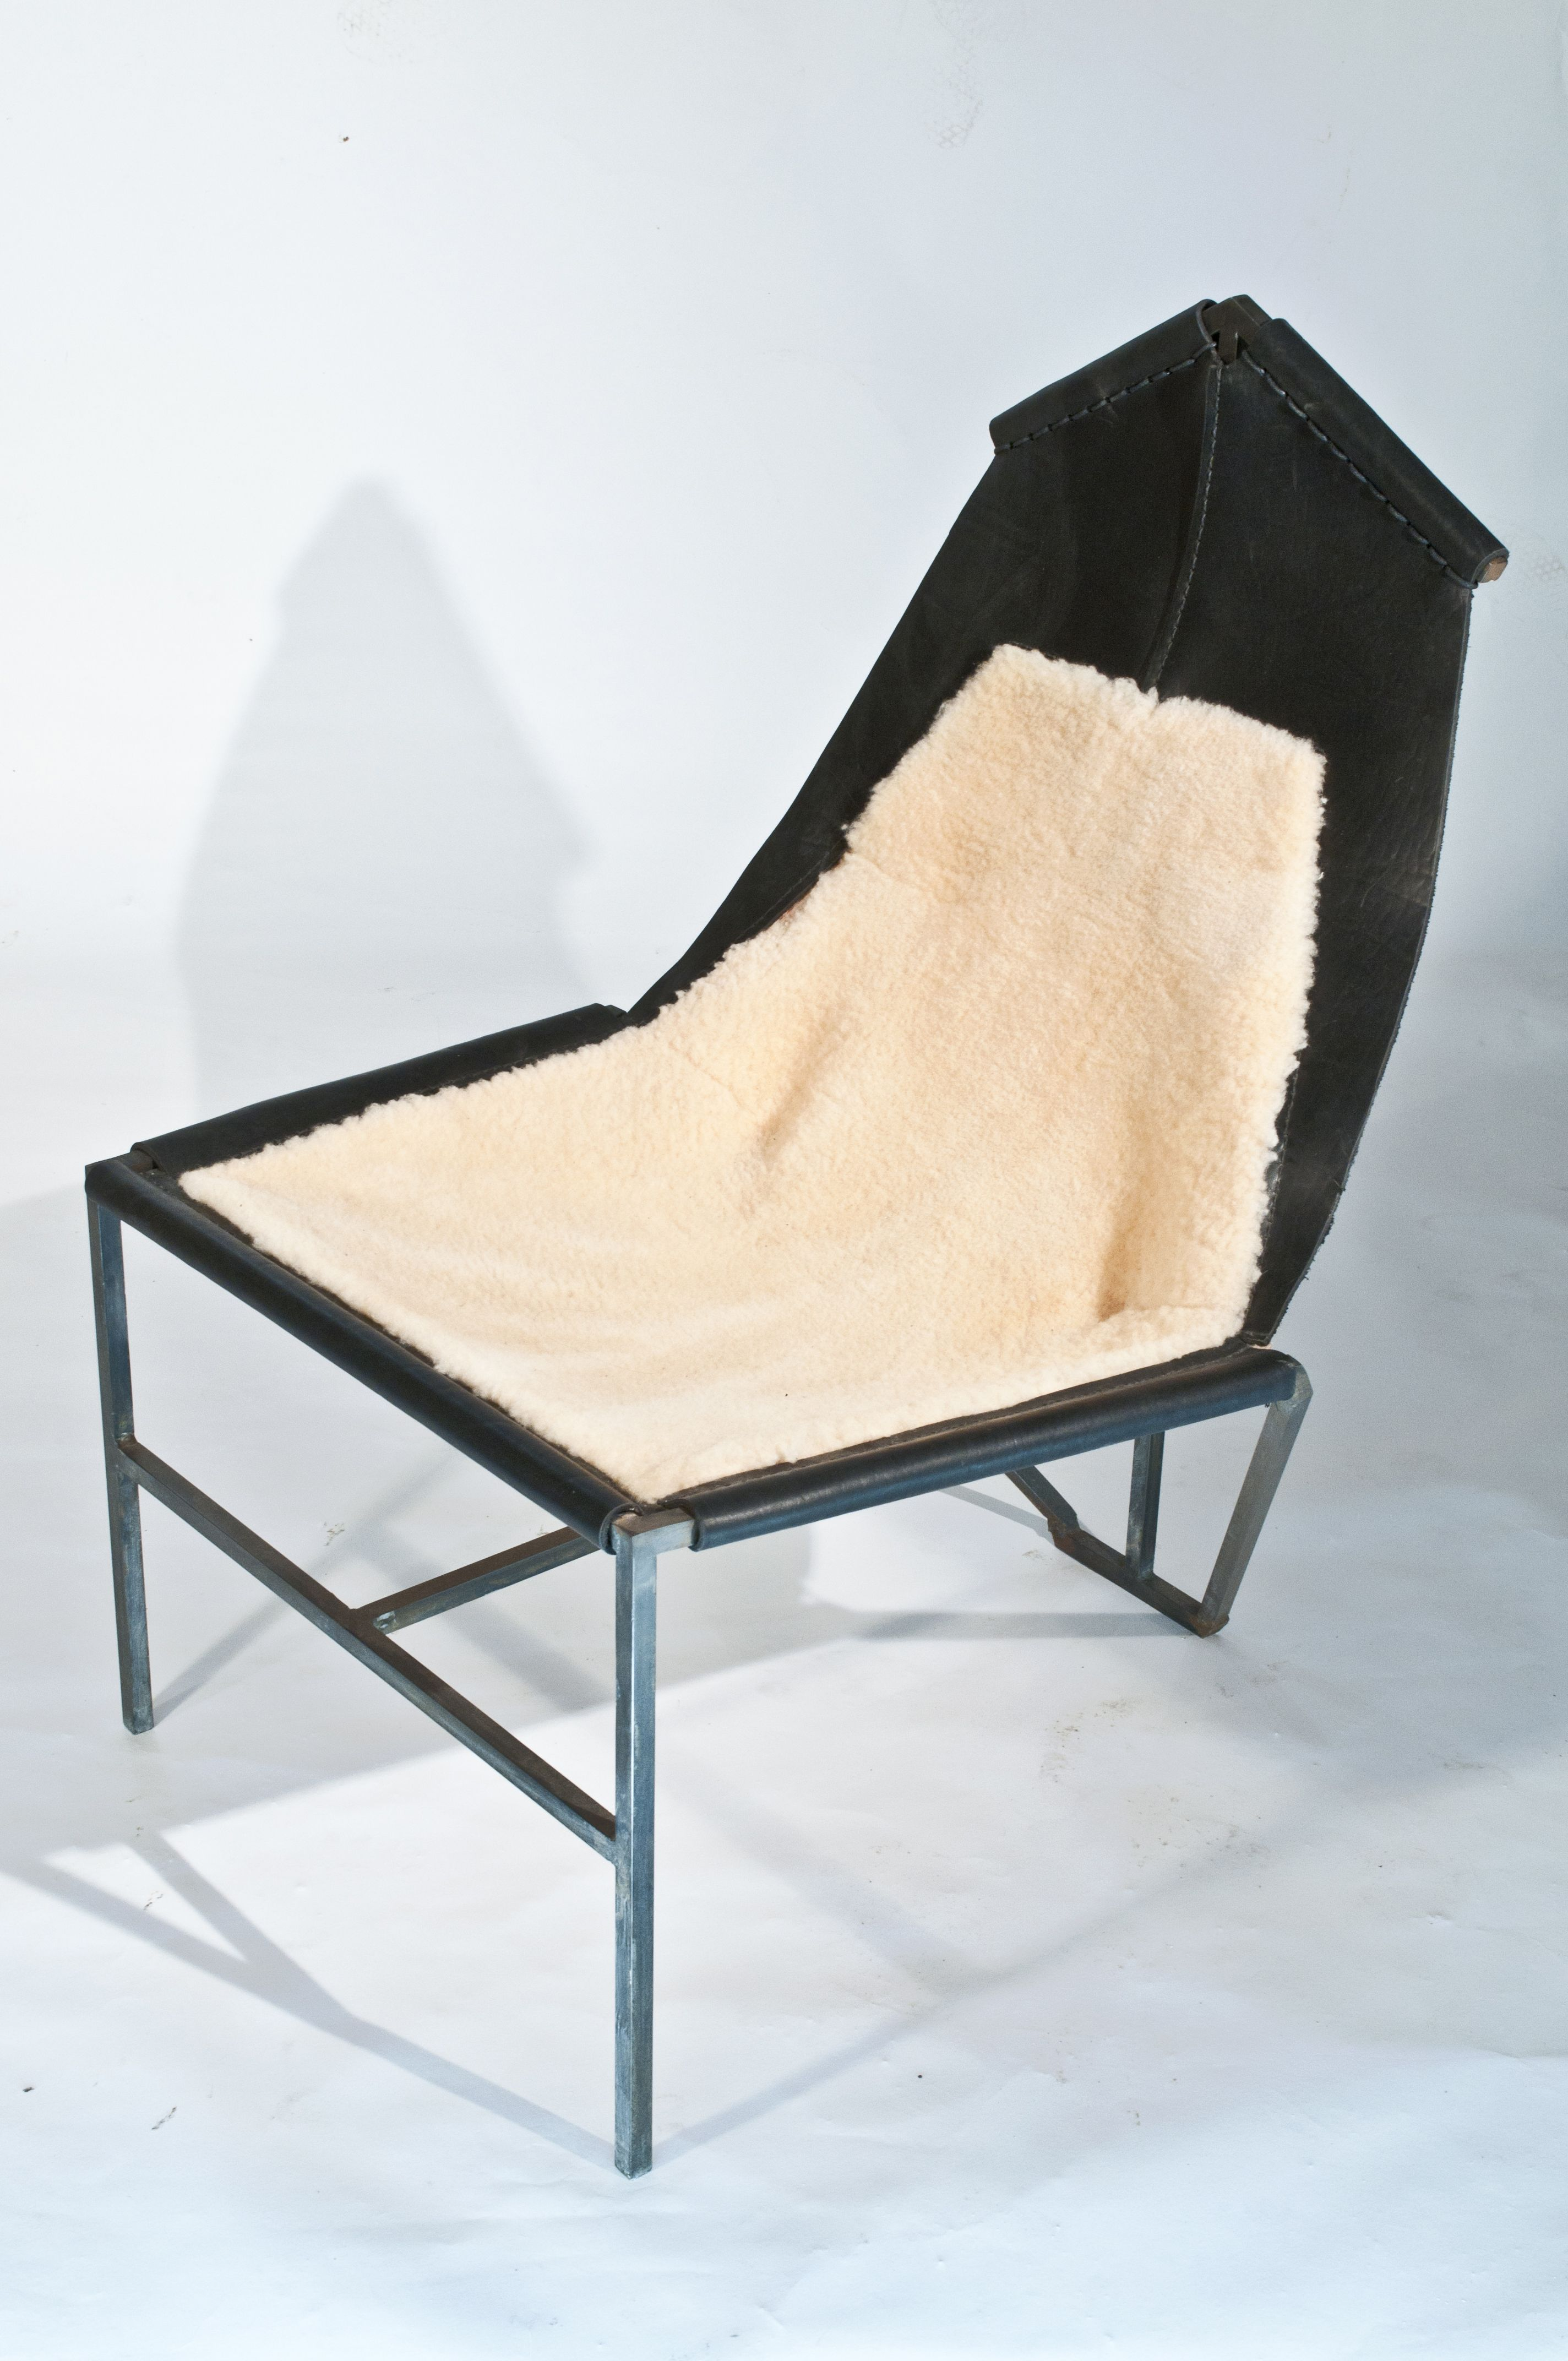 ... Fur lounge chair by taylor forrest for house of honey lounge chairs leather metal.jpg